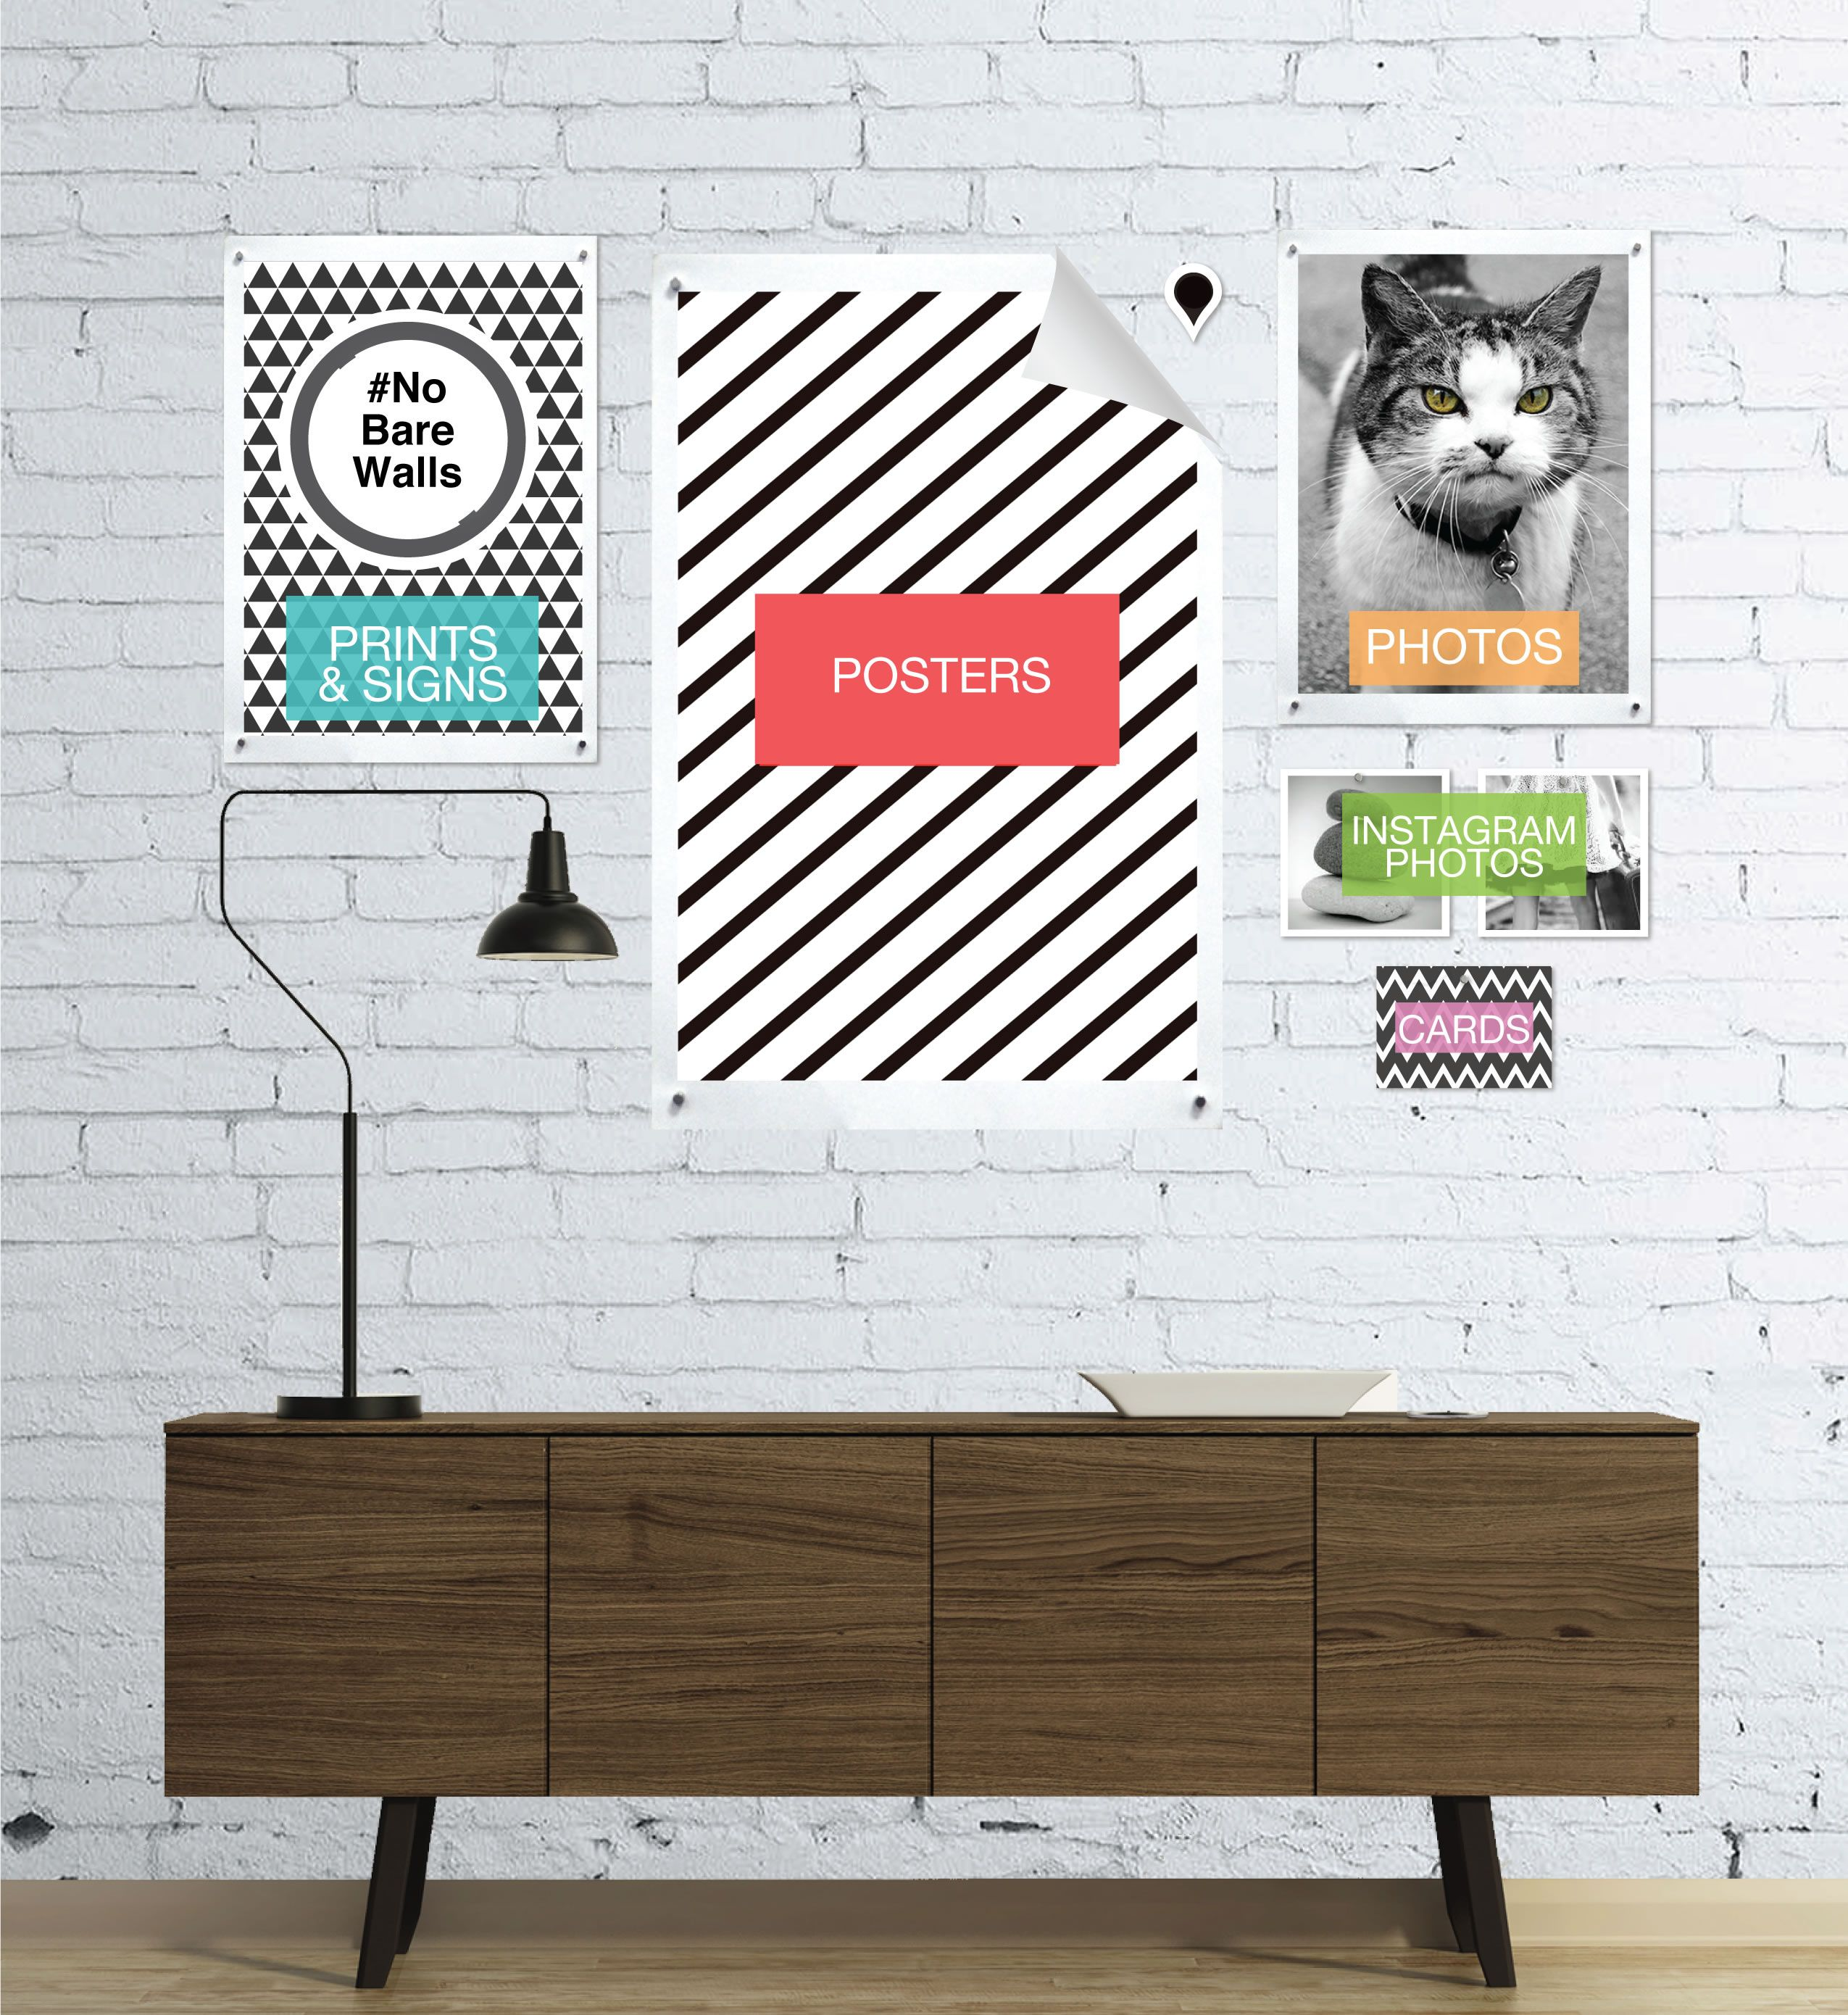 GoodHangups - Turn Your Walls Into Magnet Boards